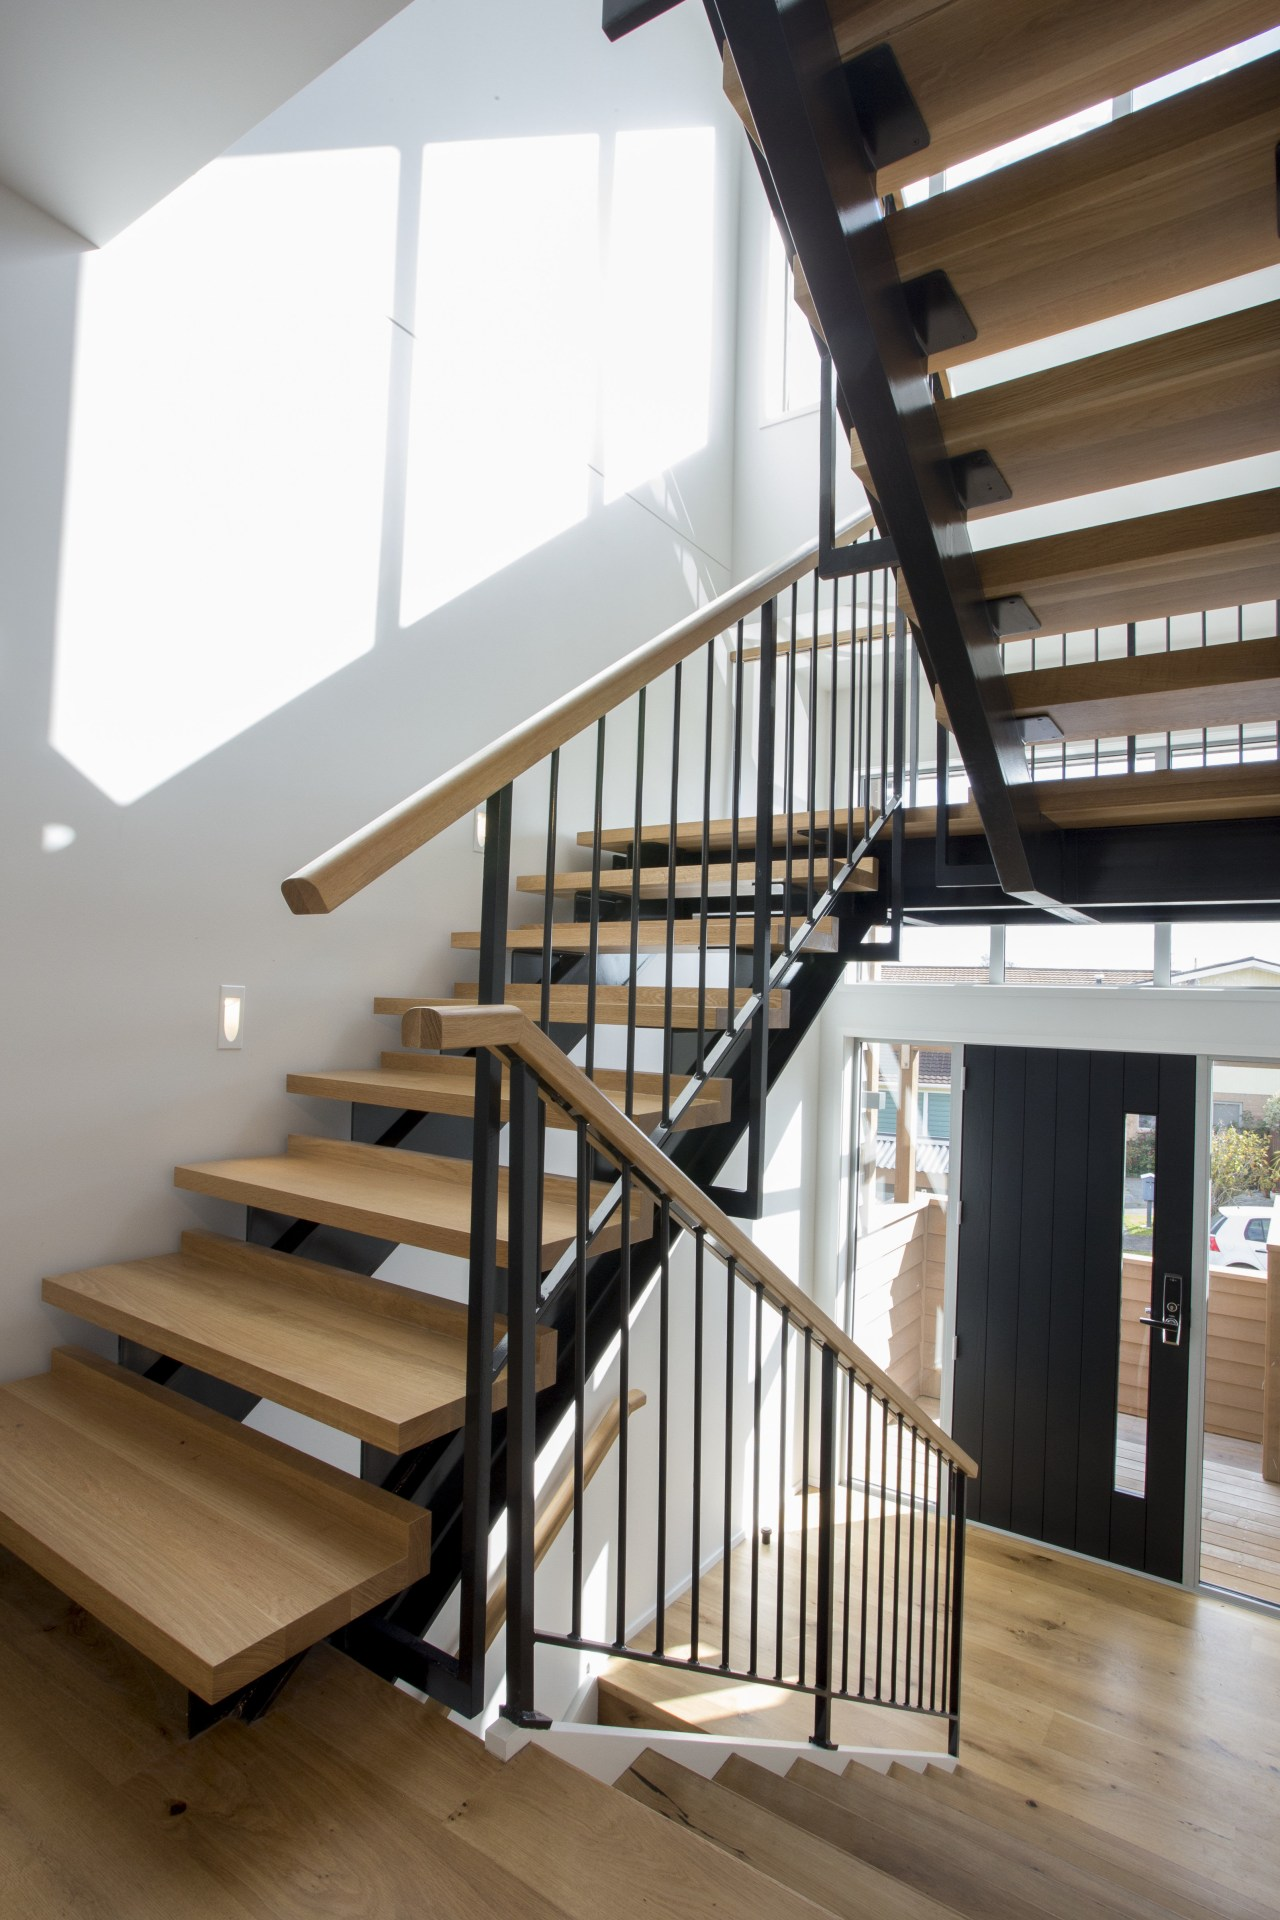 Riderless steel stairs with blond wood treads and baluster, daylighting, floor, handrail, home, house, interior design, stairs, structure, wood, brown, gray